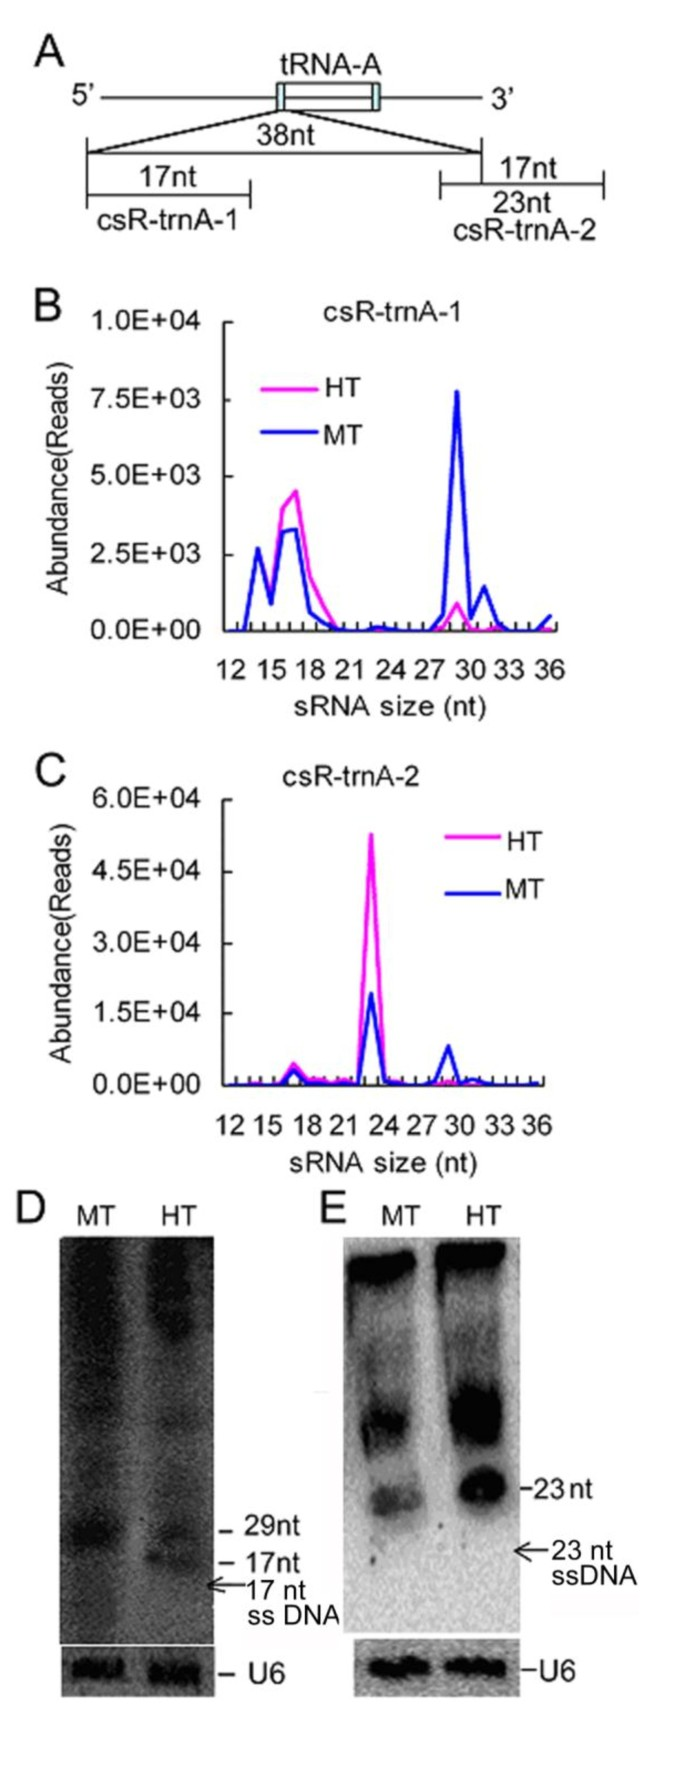 A novel class of heat-responsive small RNAs derived from the